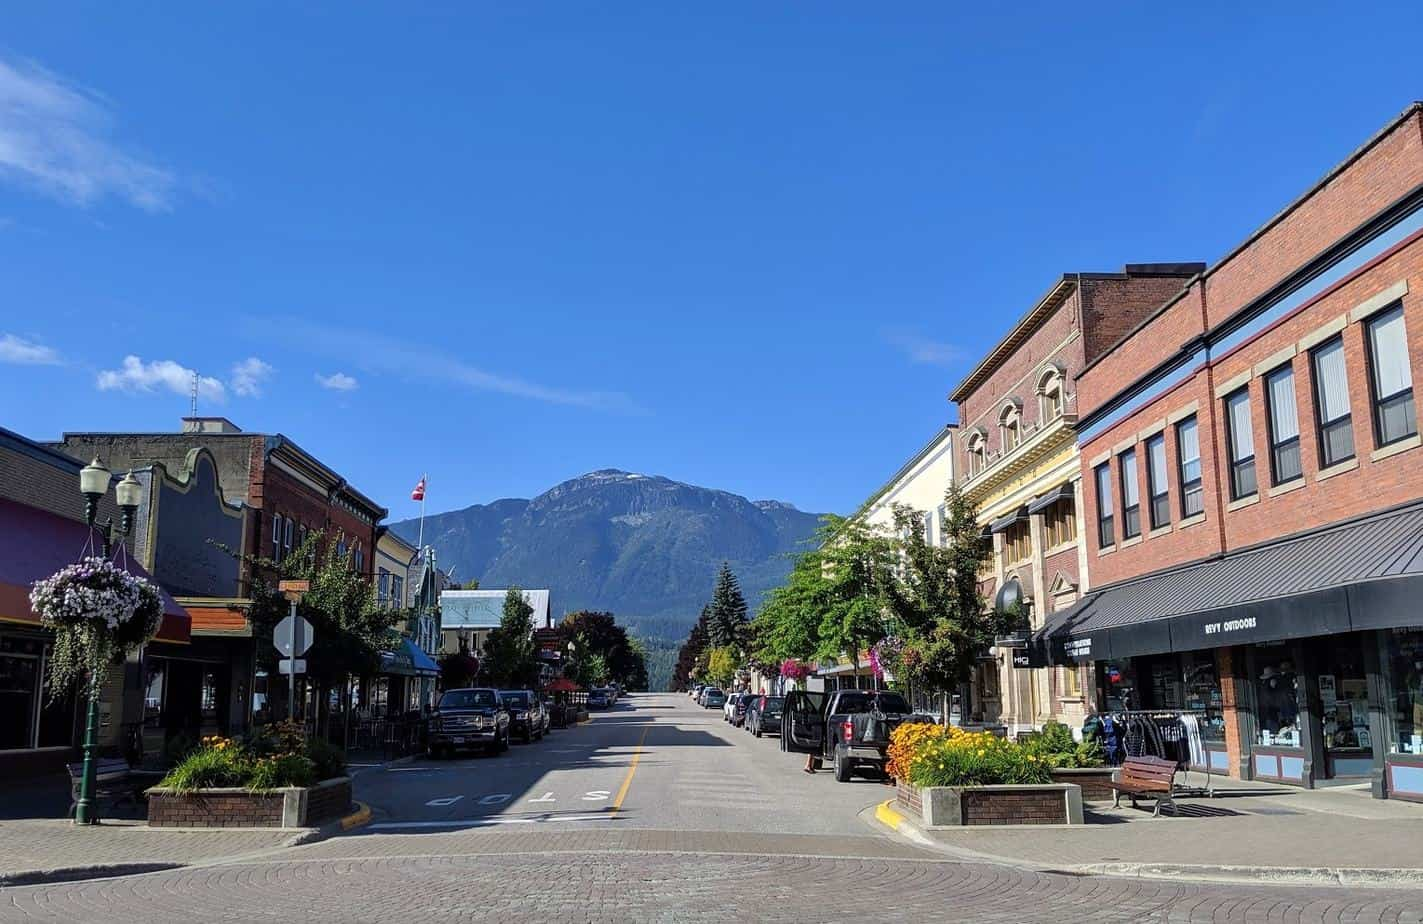 View of downtown Revelstoke with heritage style buildings